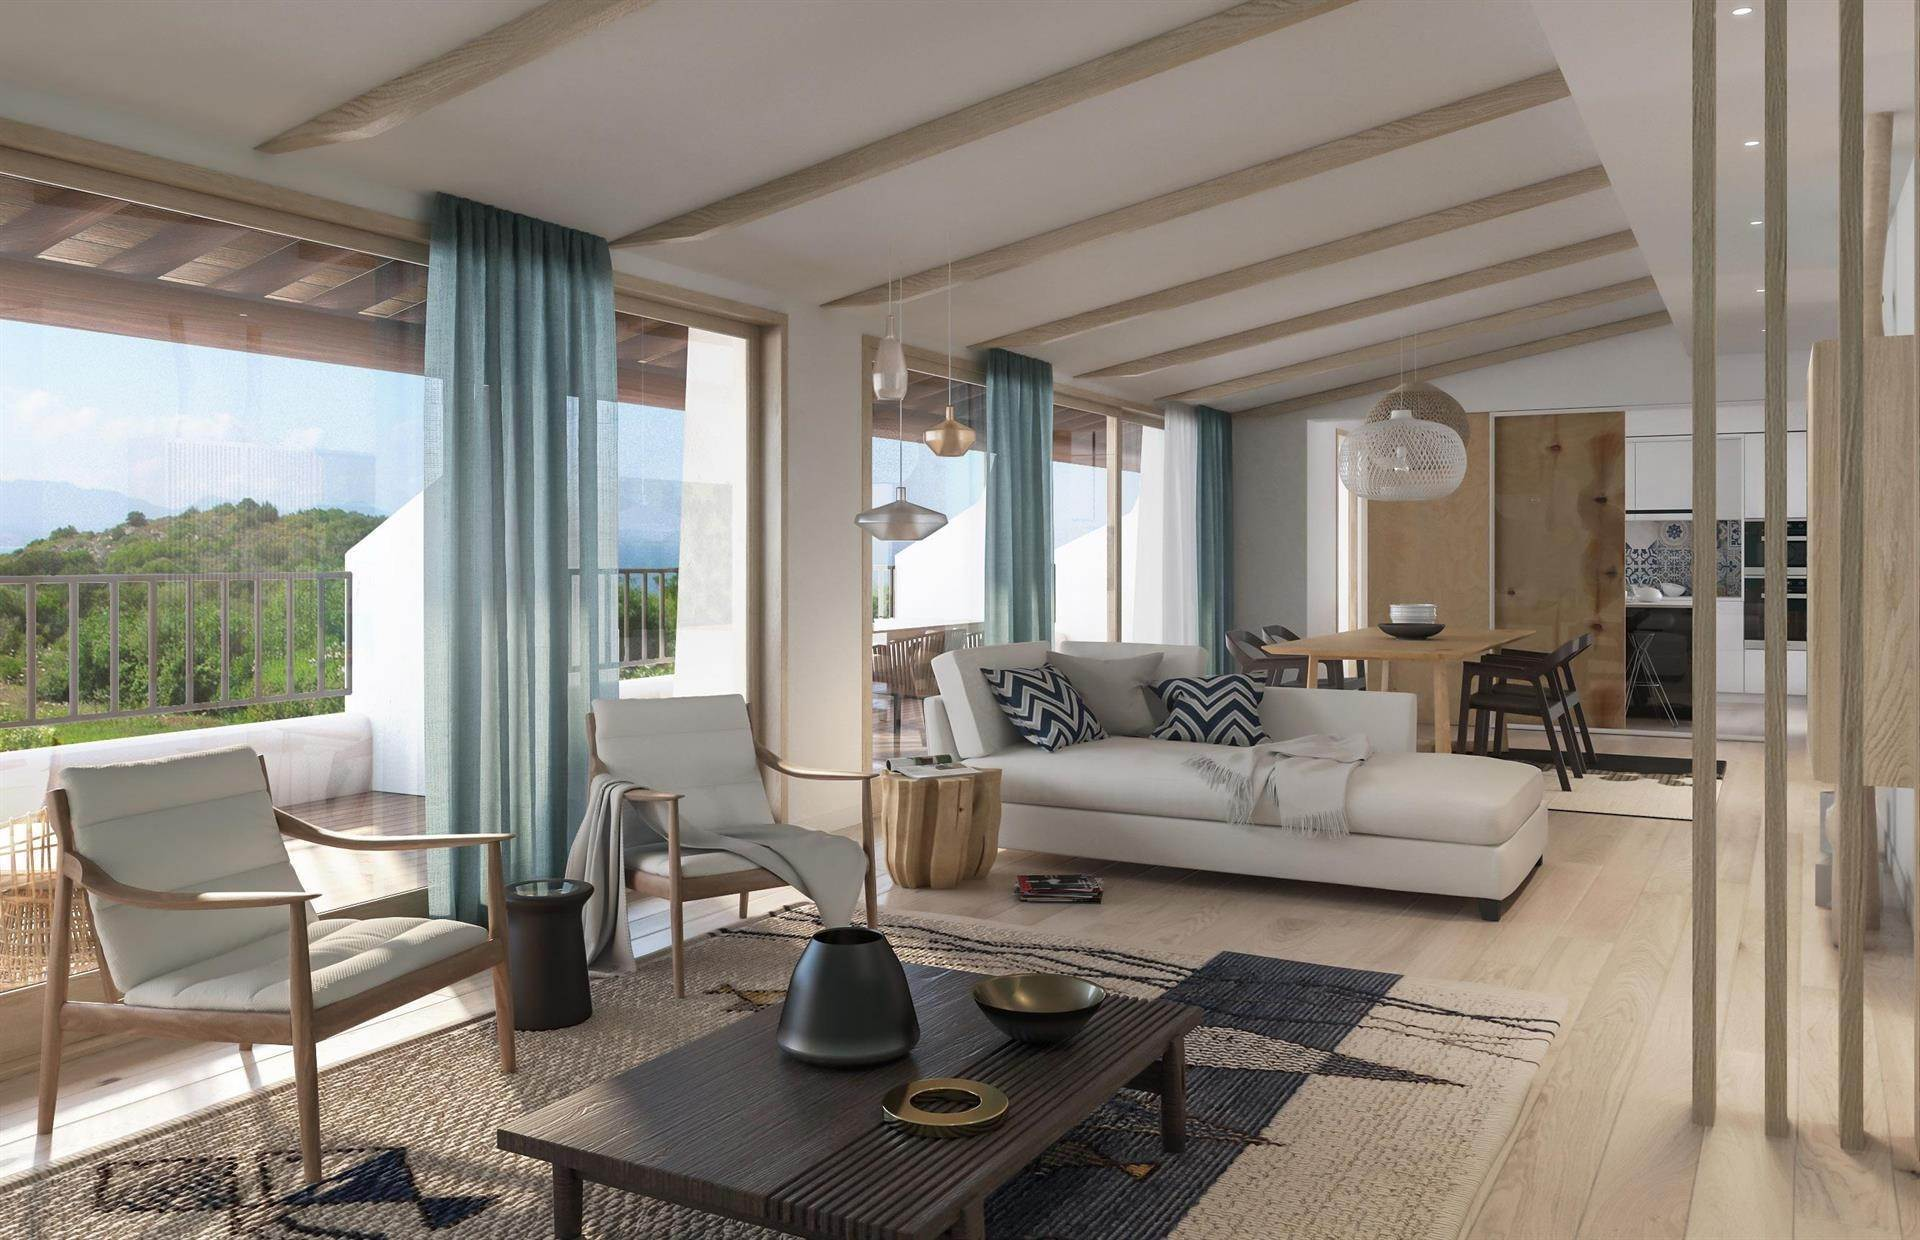 Appartementen voor Verkoop op Penthouse with Sea View - New Project Capo Ceraso, Olbia Tempio,0026 Italië